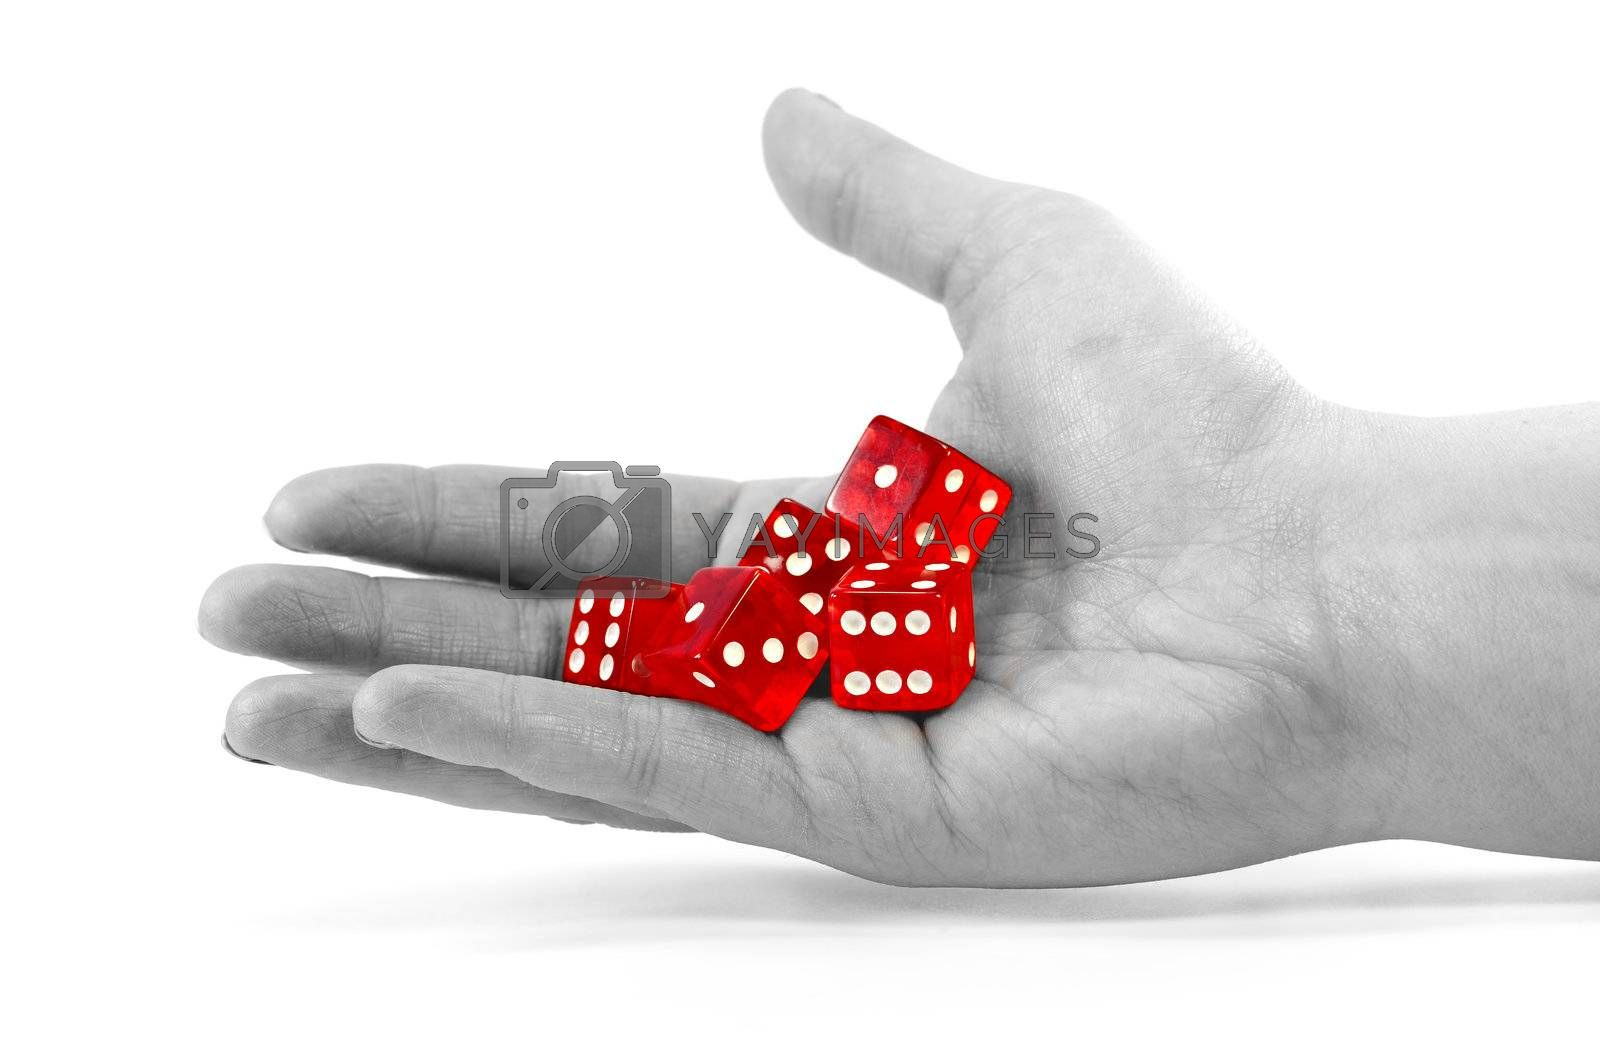 Red dices in a desturated hand